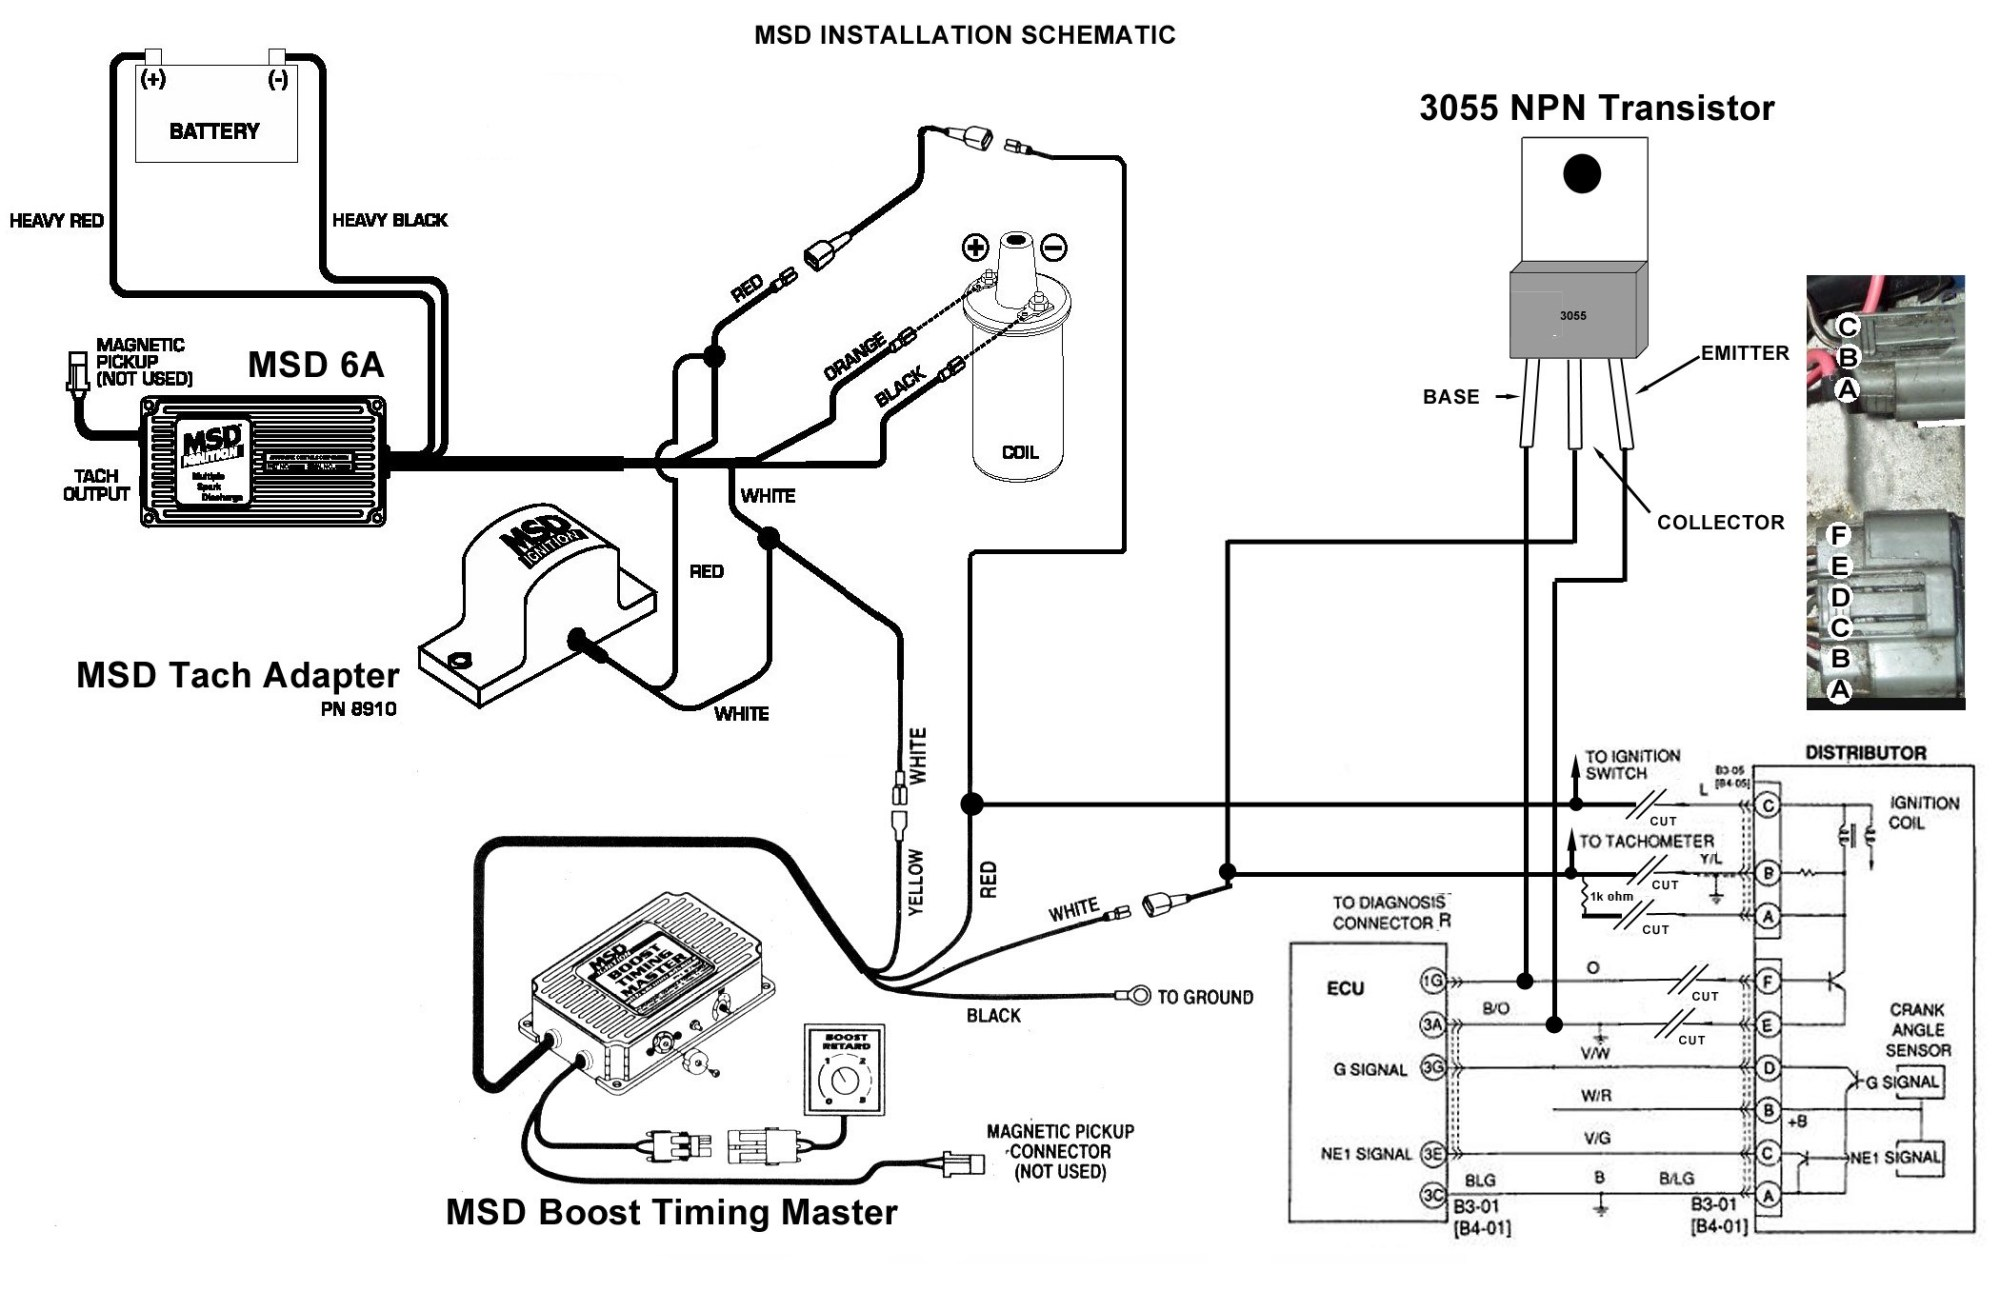 hight resolution of mazda protege engine diagram mazda mx 6 engine diagram mazda mx6 engine diagram wiring diagrams of